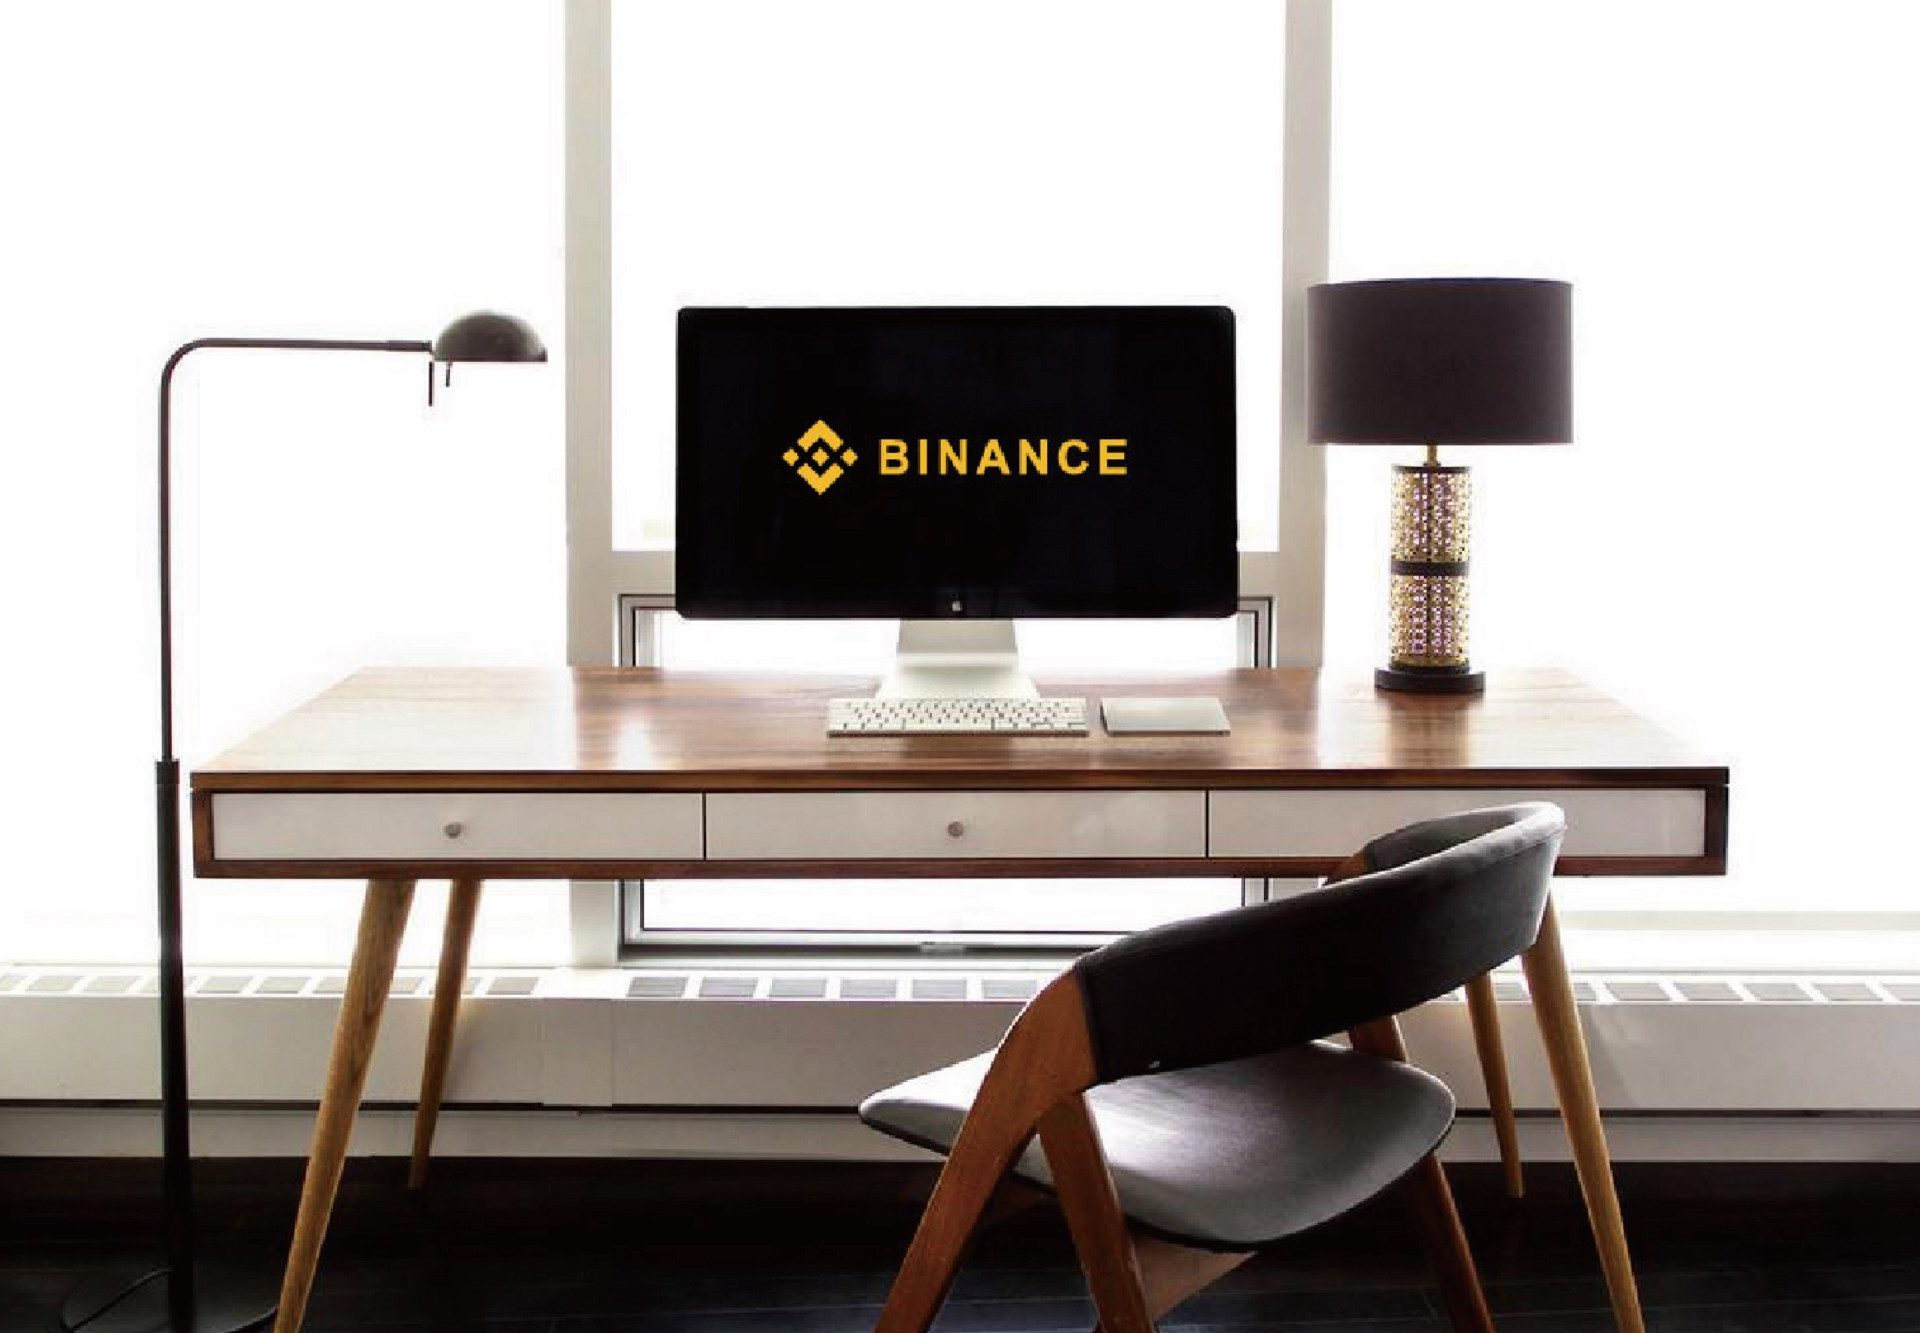 Binance Again Hit The News With Its Sub-Account Support Feature